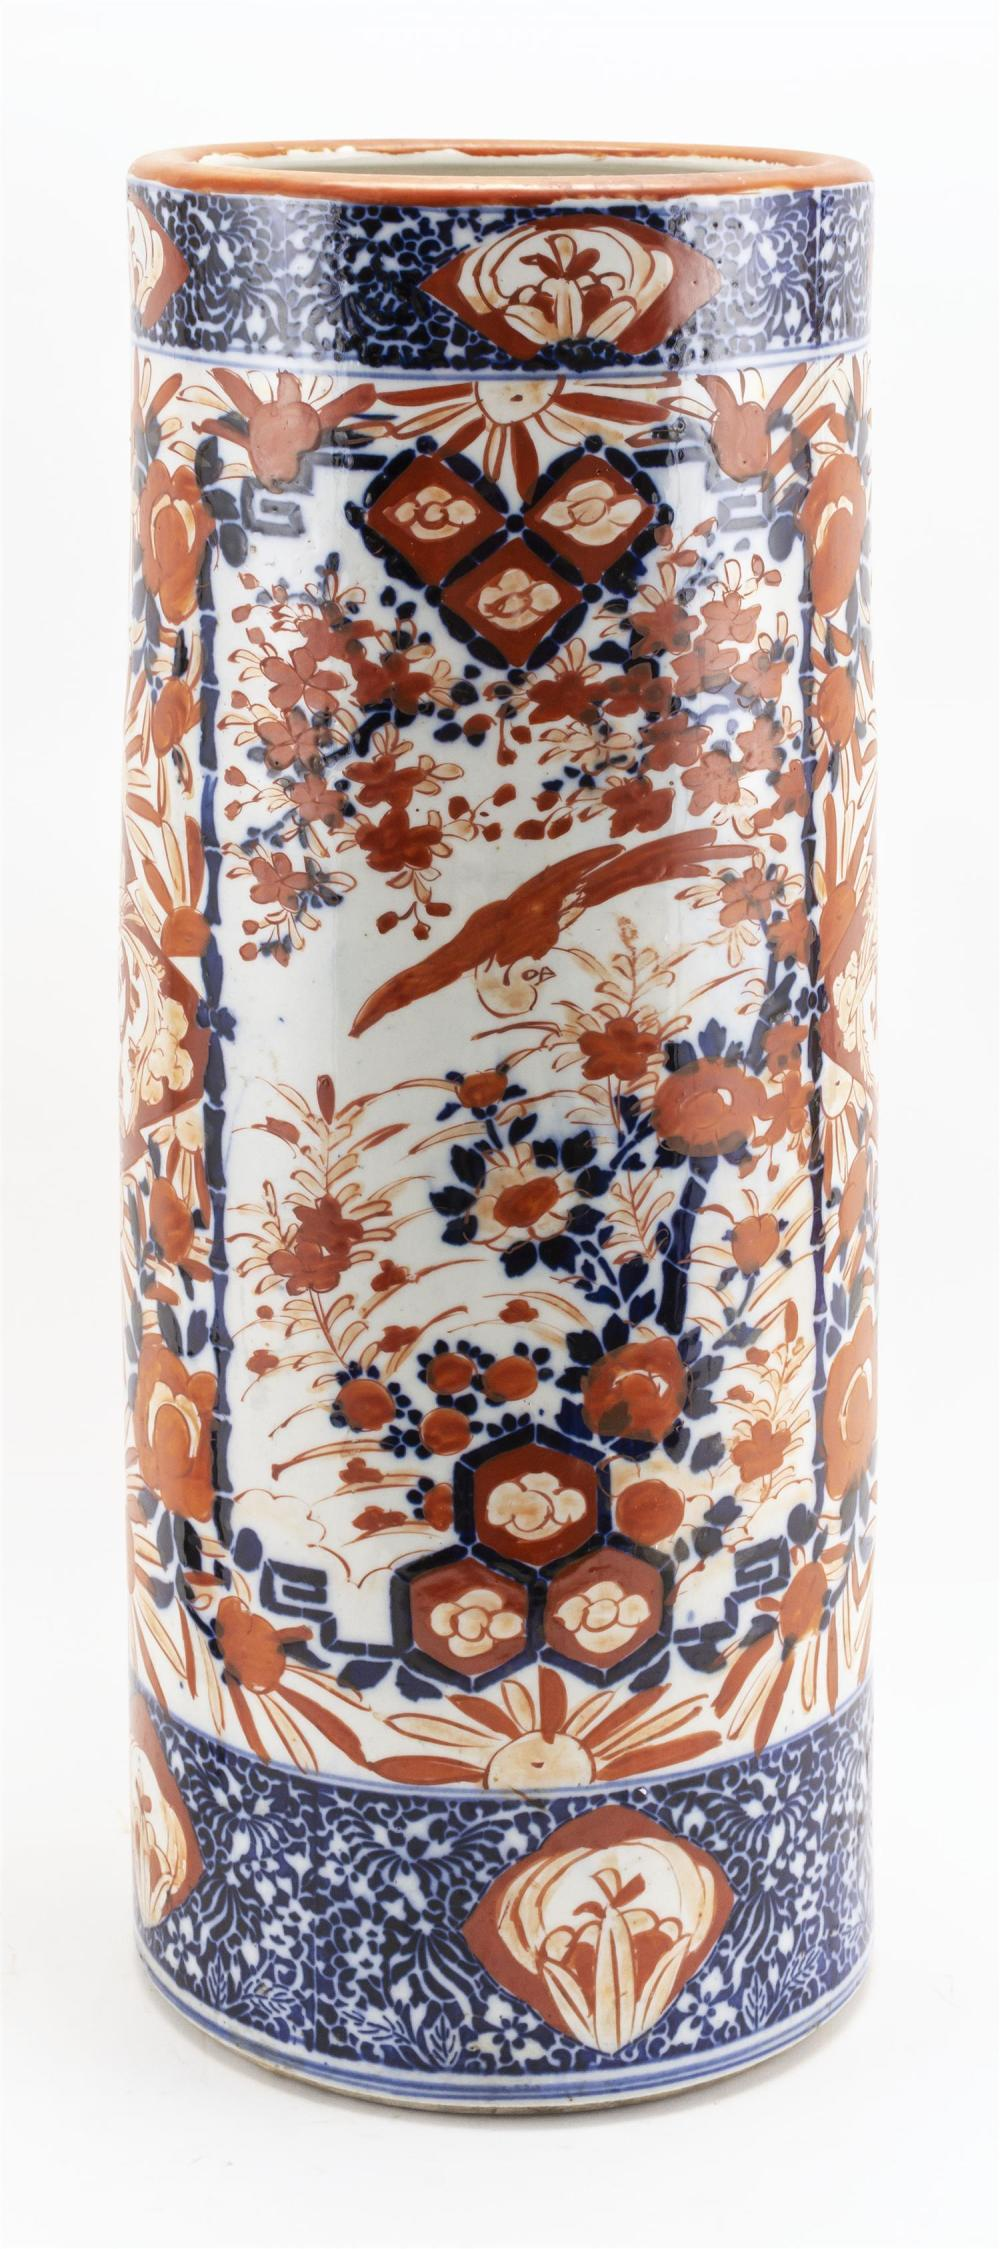 "JAPANESE IMARI PORCELAIN UMBRELLA STAND Cylindrical, with a bird and floral design. Height 24.5""."